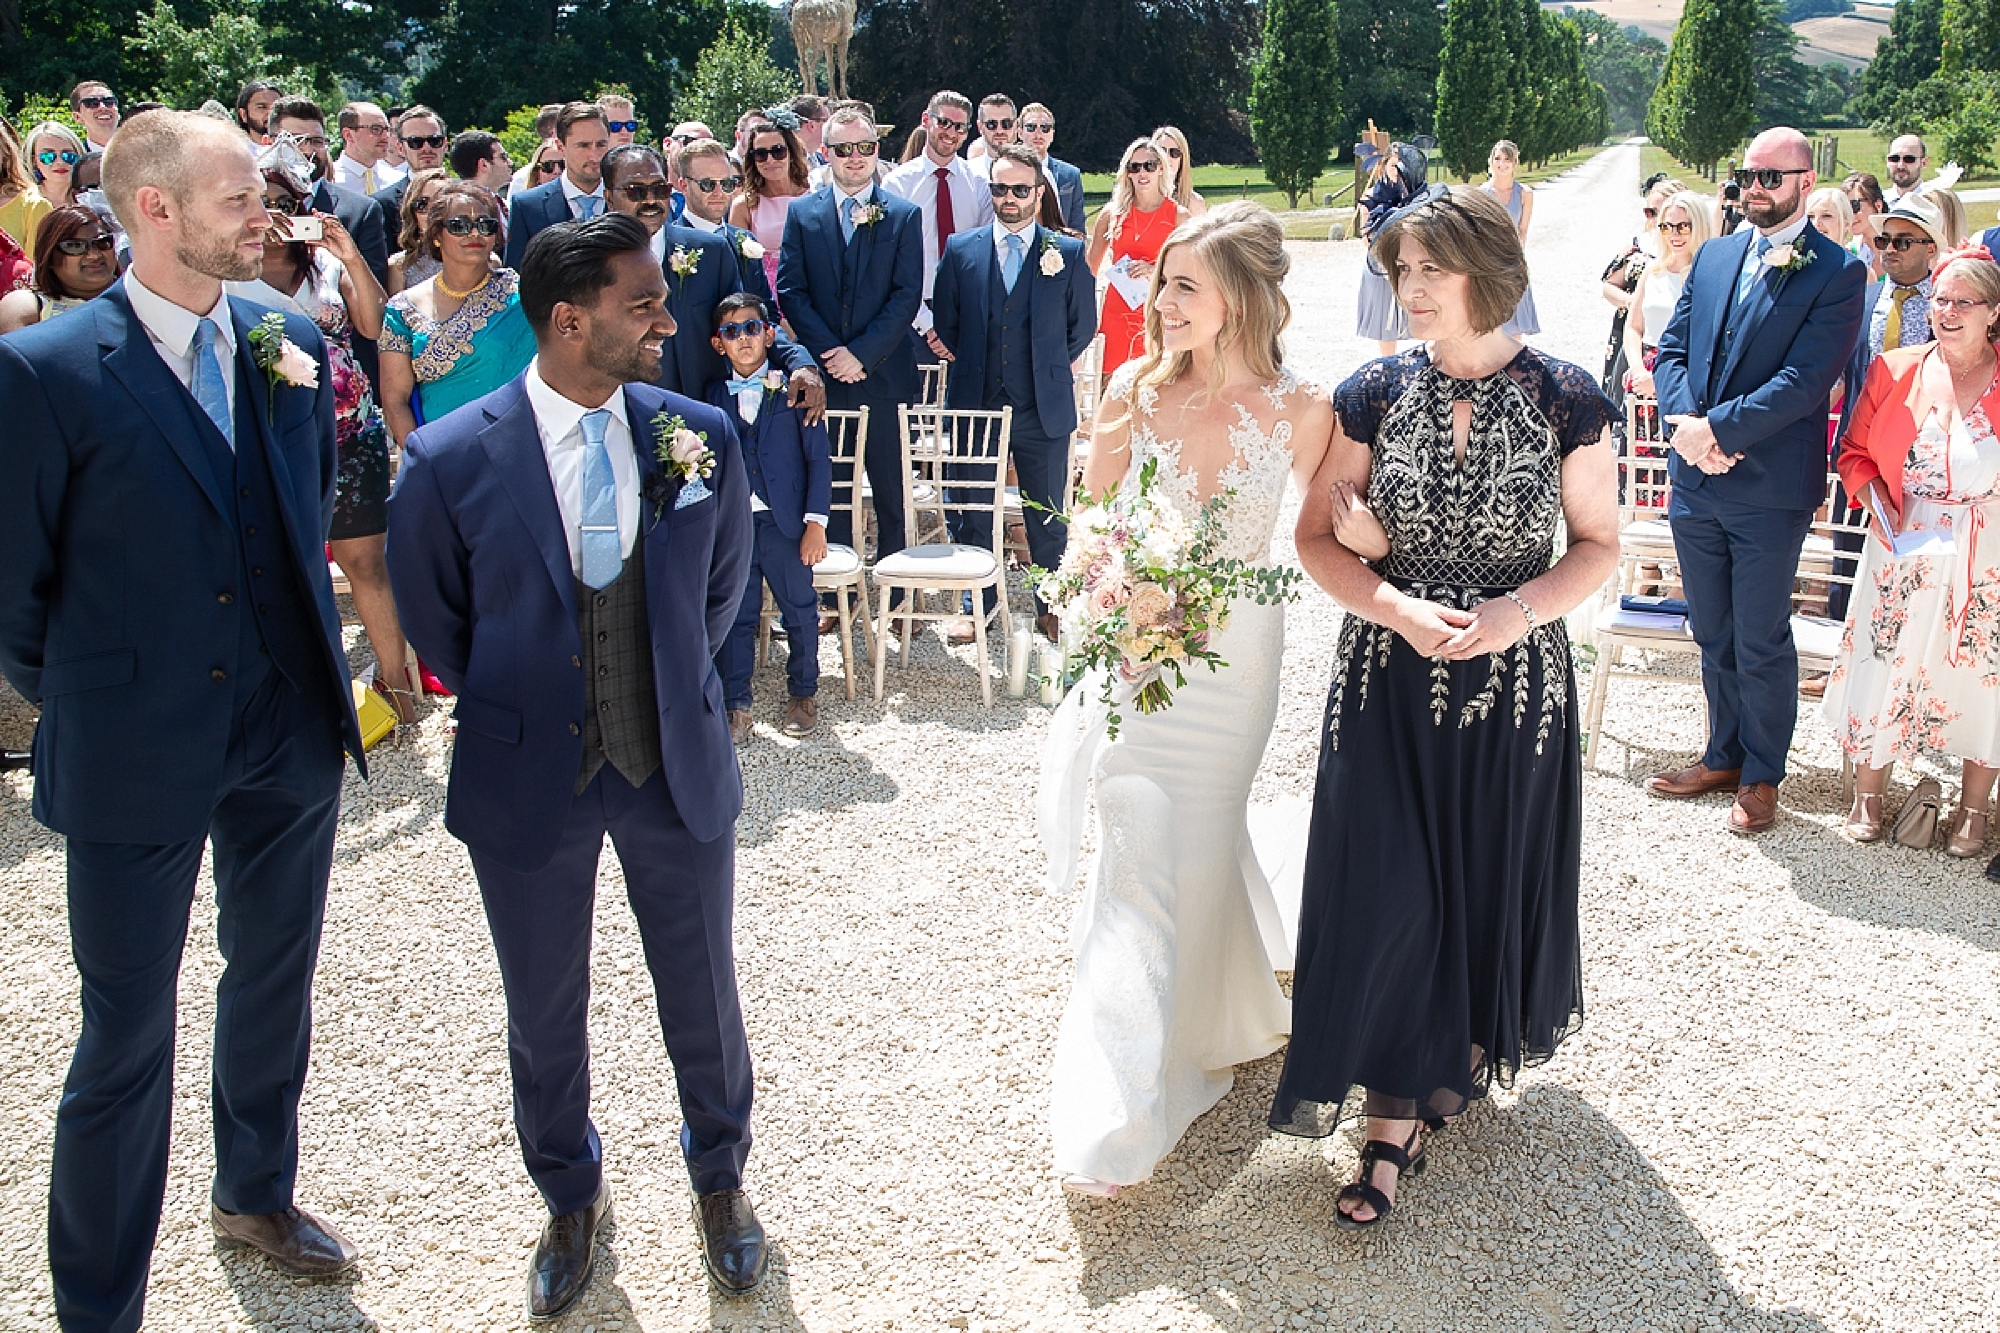 bride and mother walk up to groom in outdoors wedding ceremony at Pynes house in devon